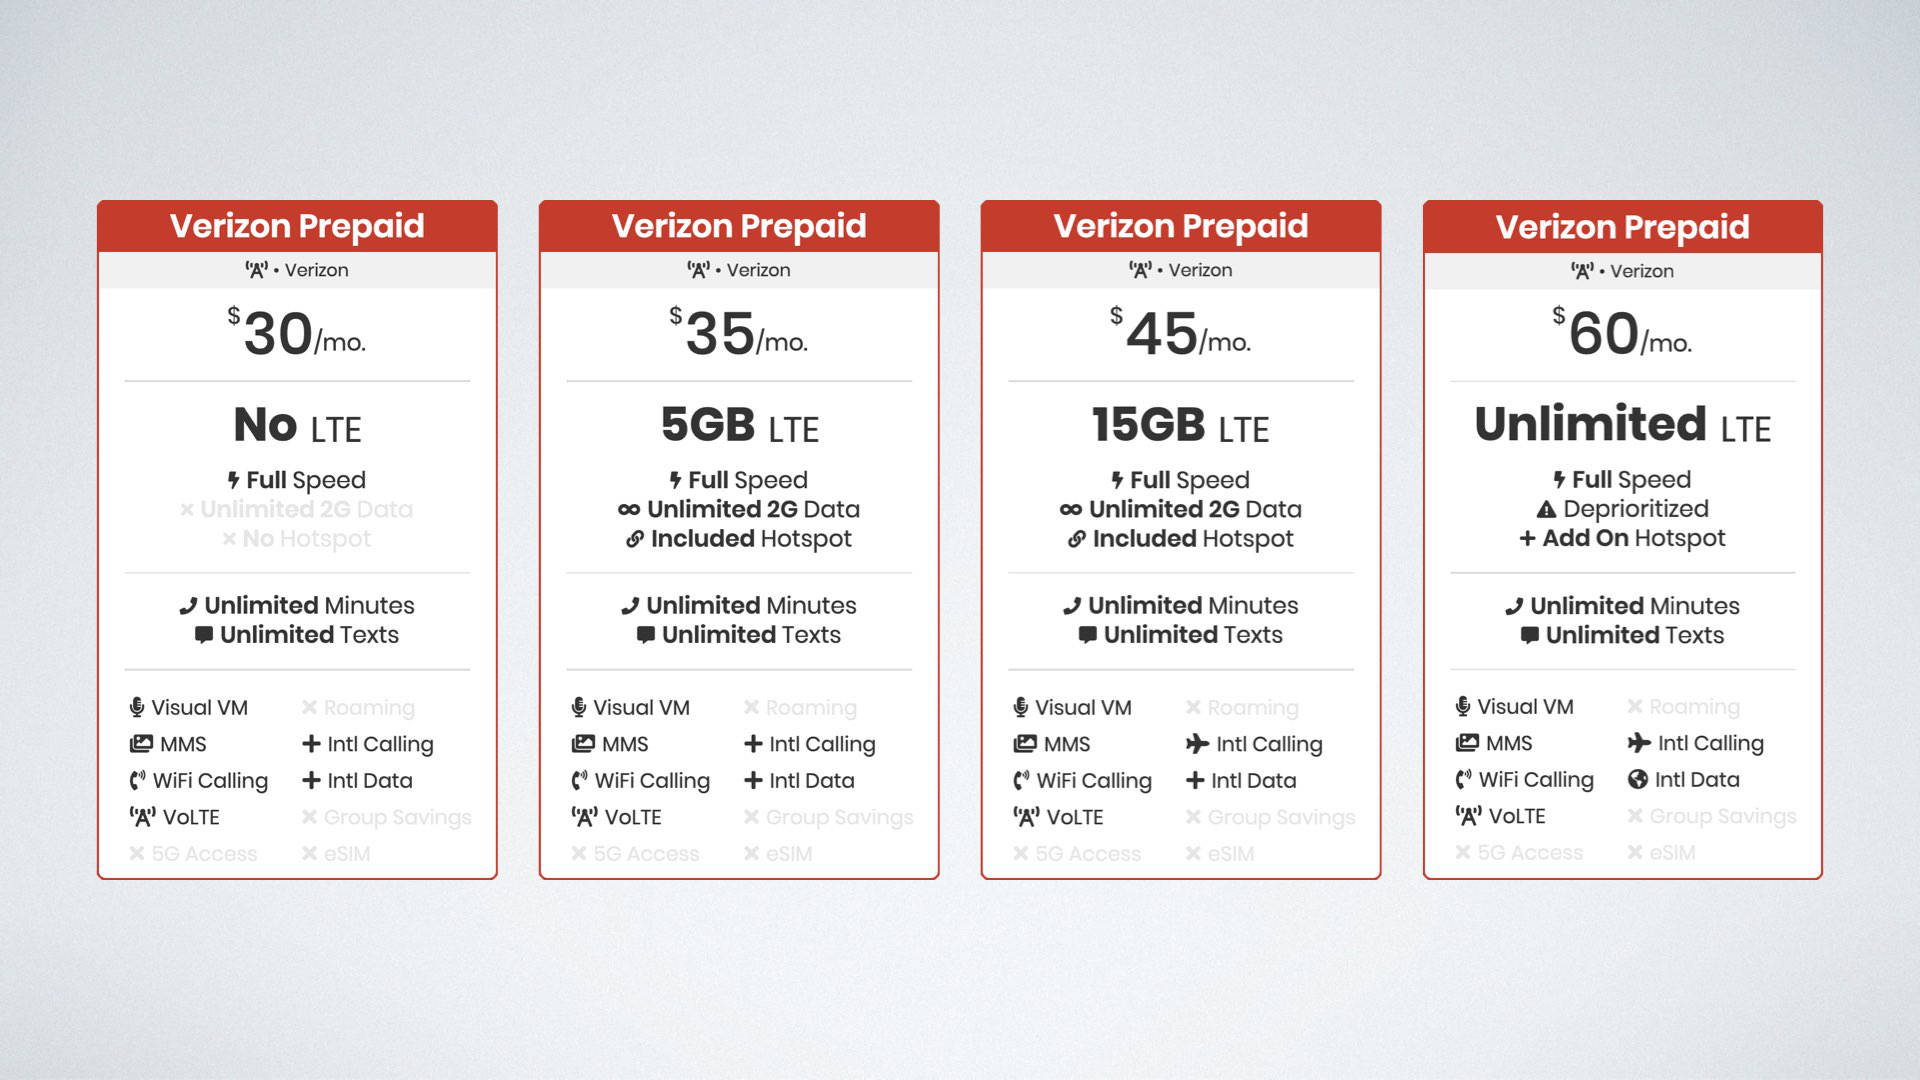 Verizon's new prepaid plans